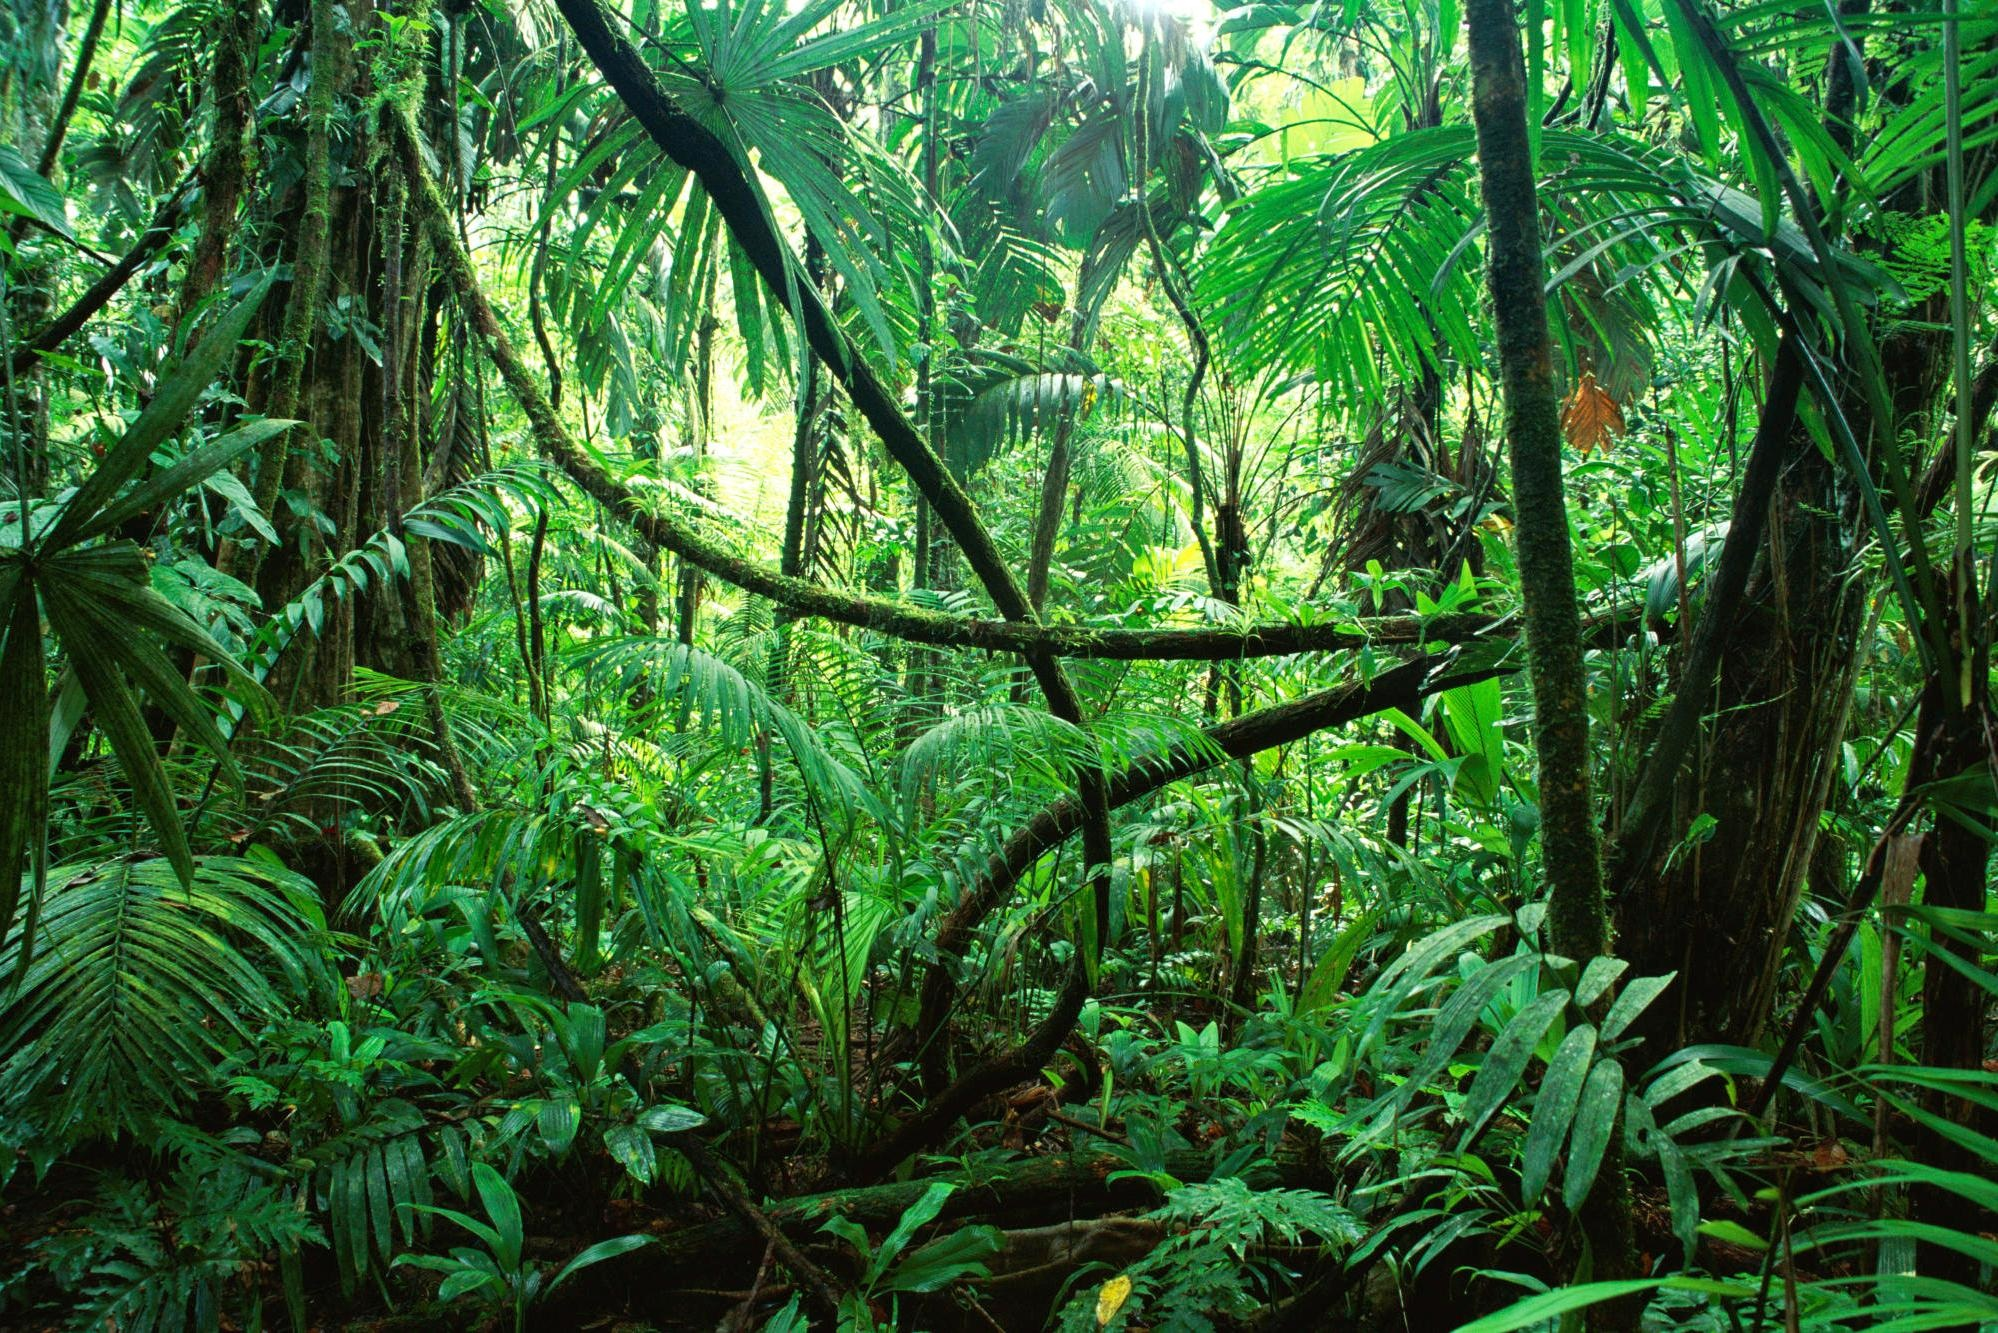 Sub Tropical Broad Leaved Forest